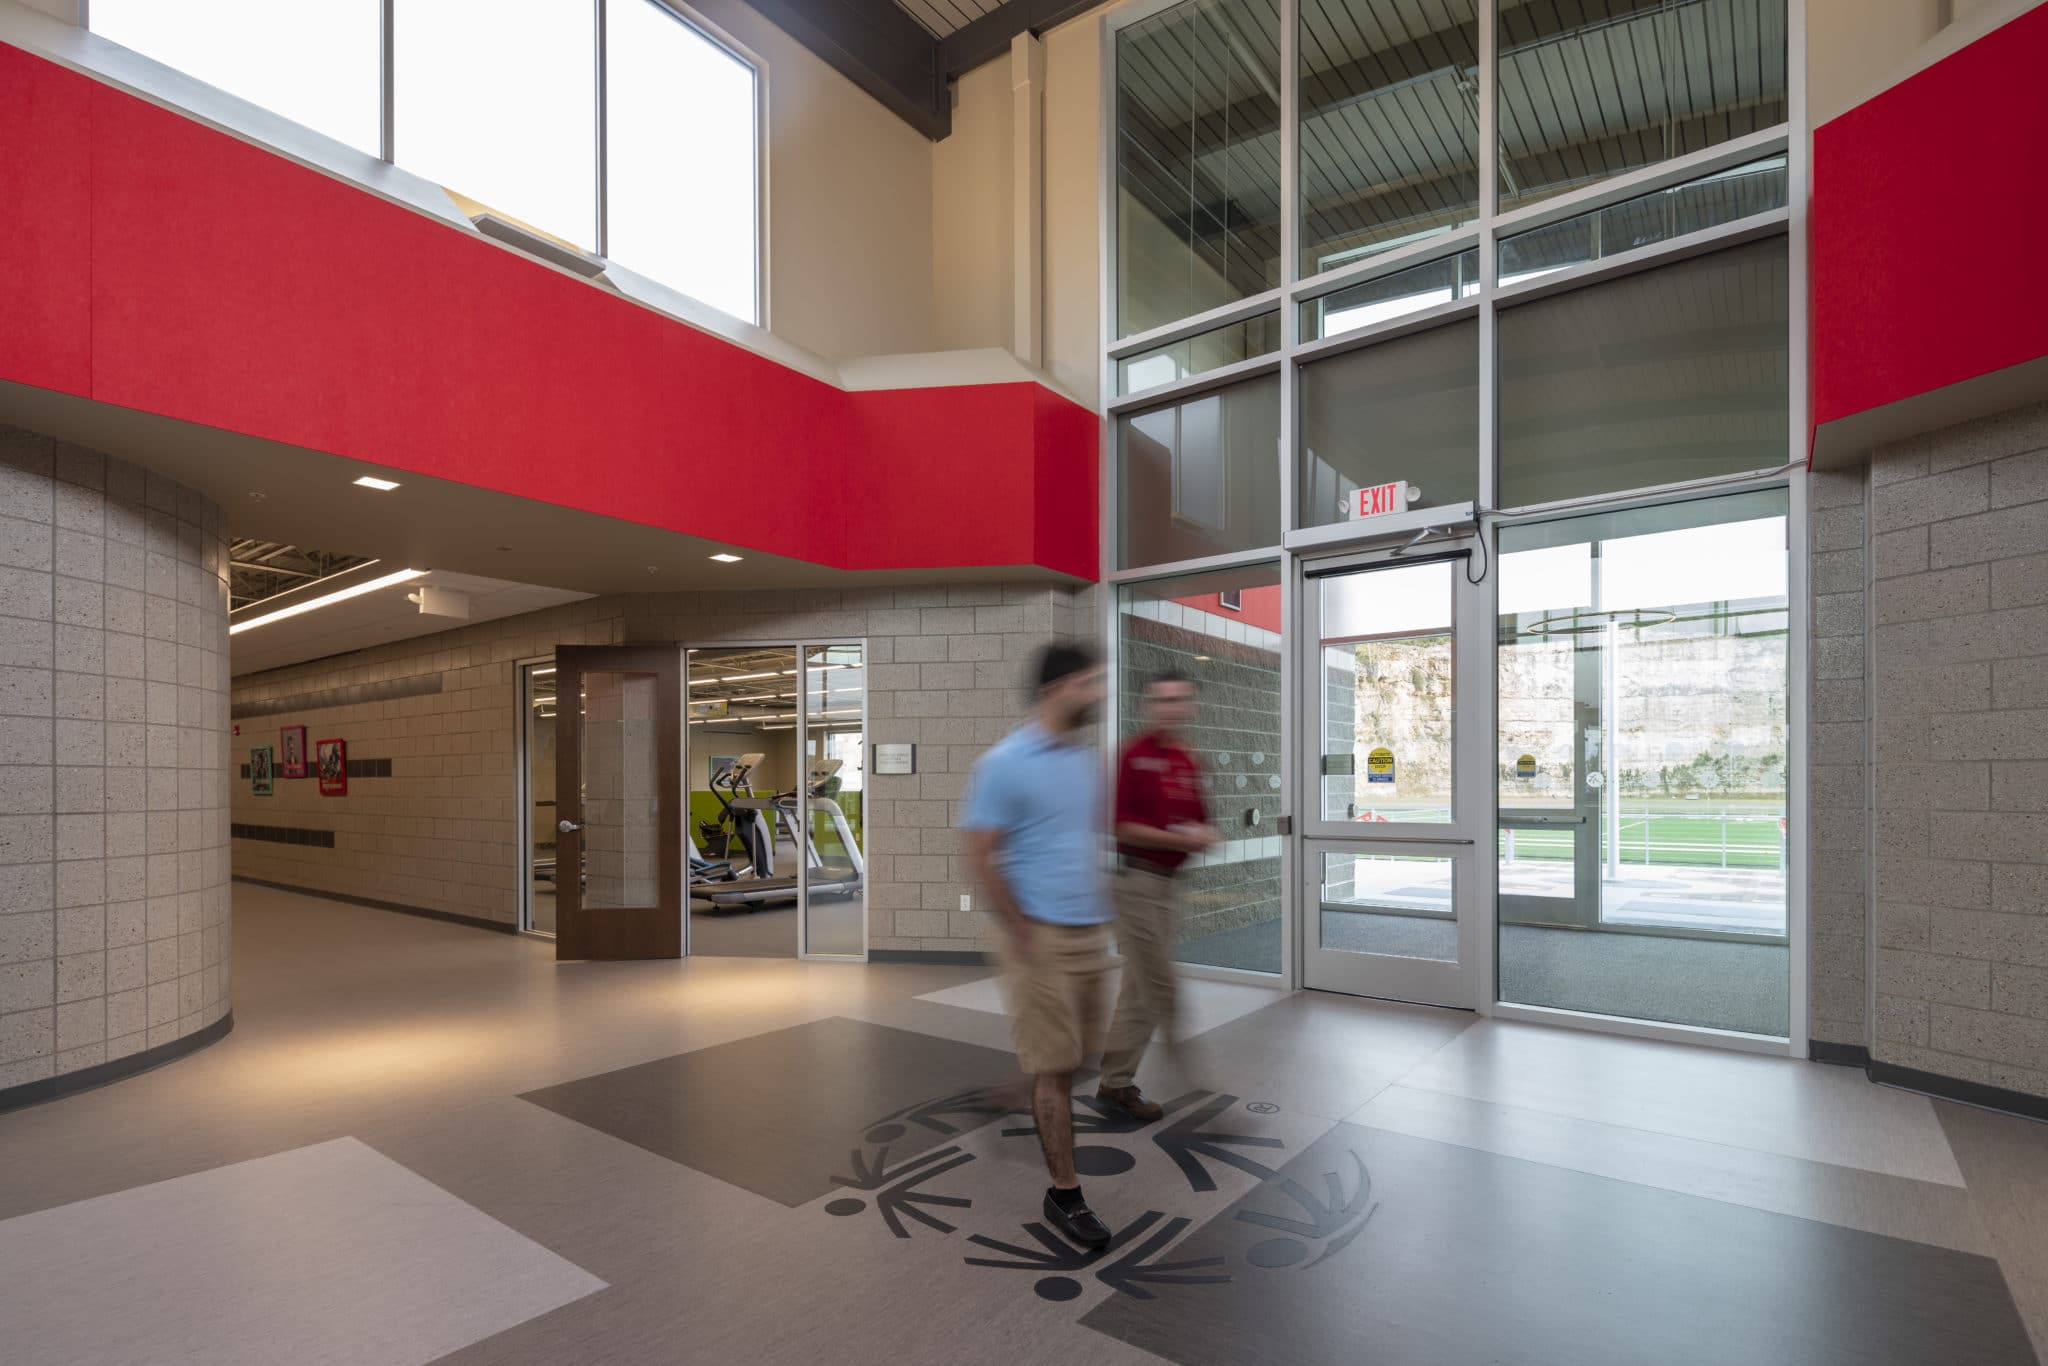 An interior photo showing two people walking through the halls at the Training for Life Campus